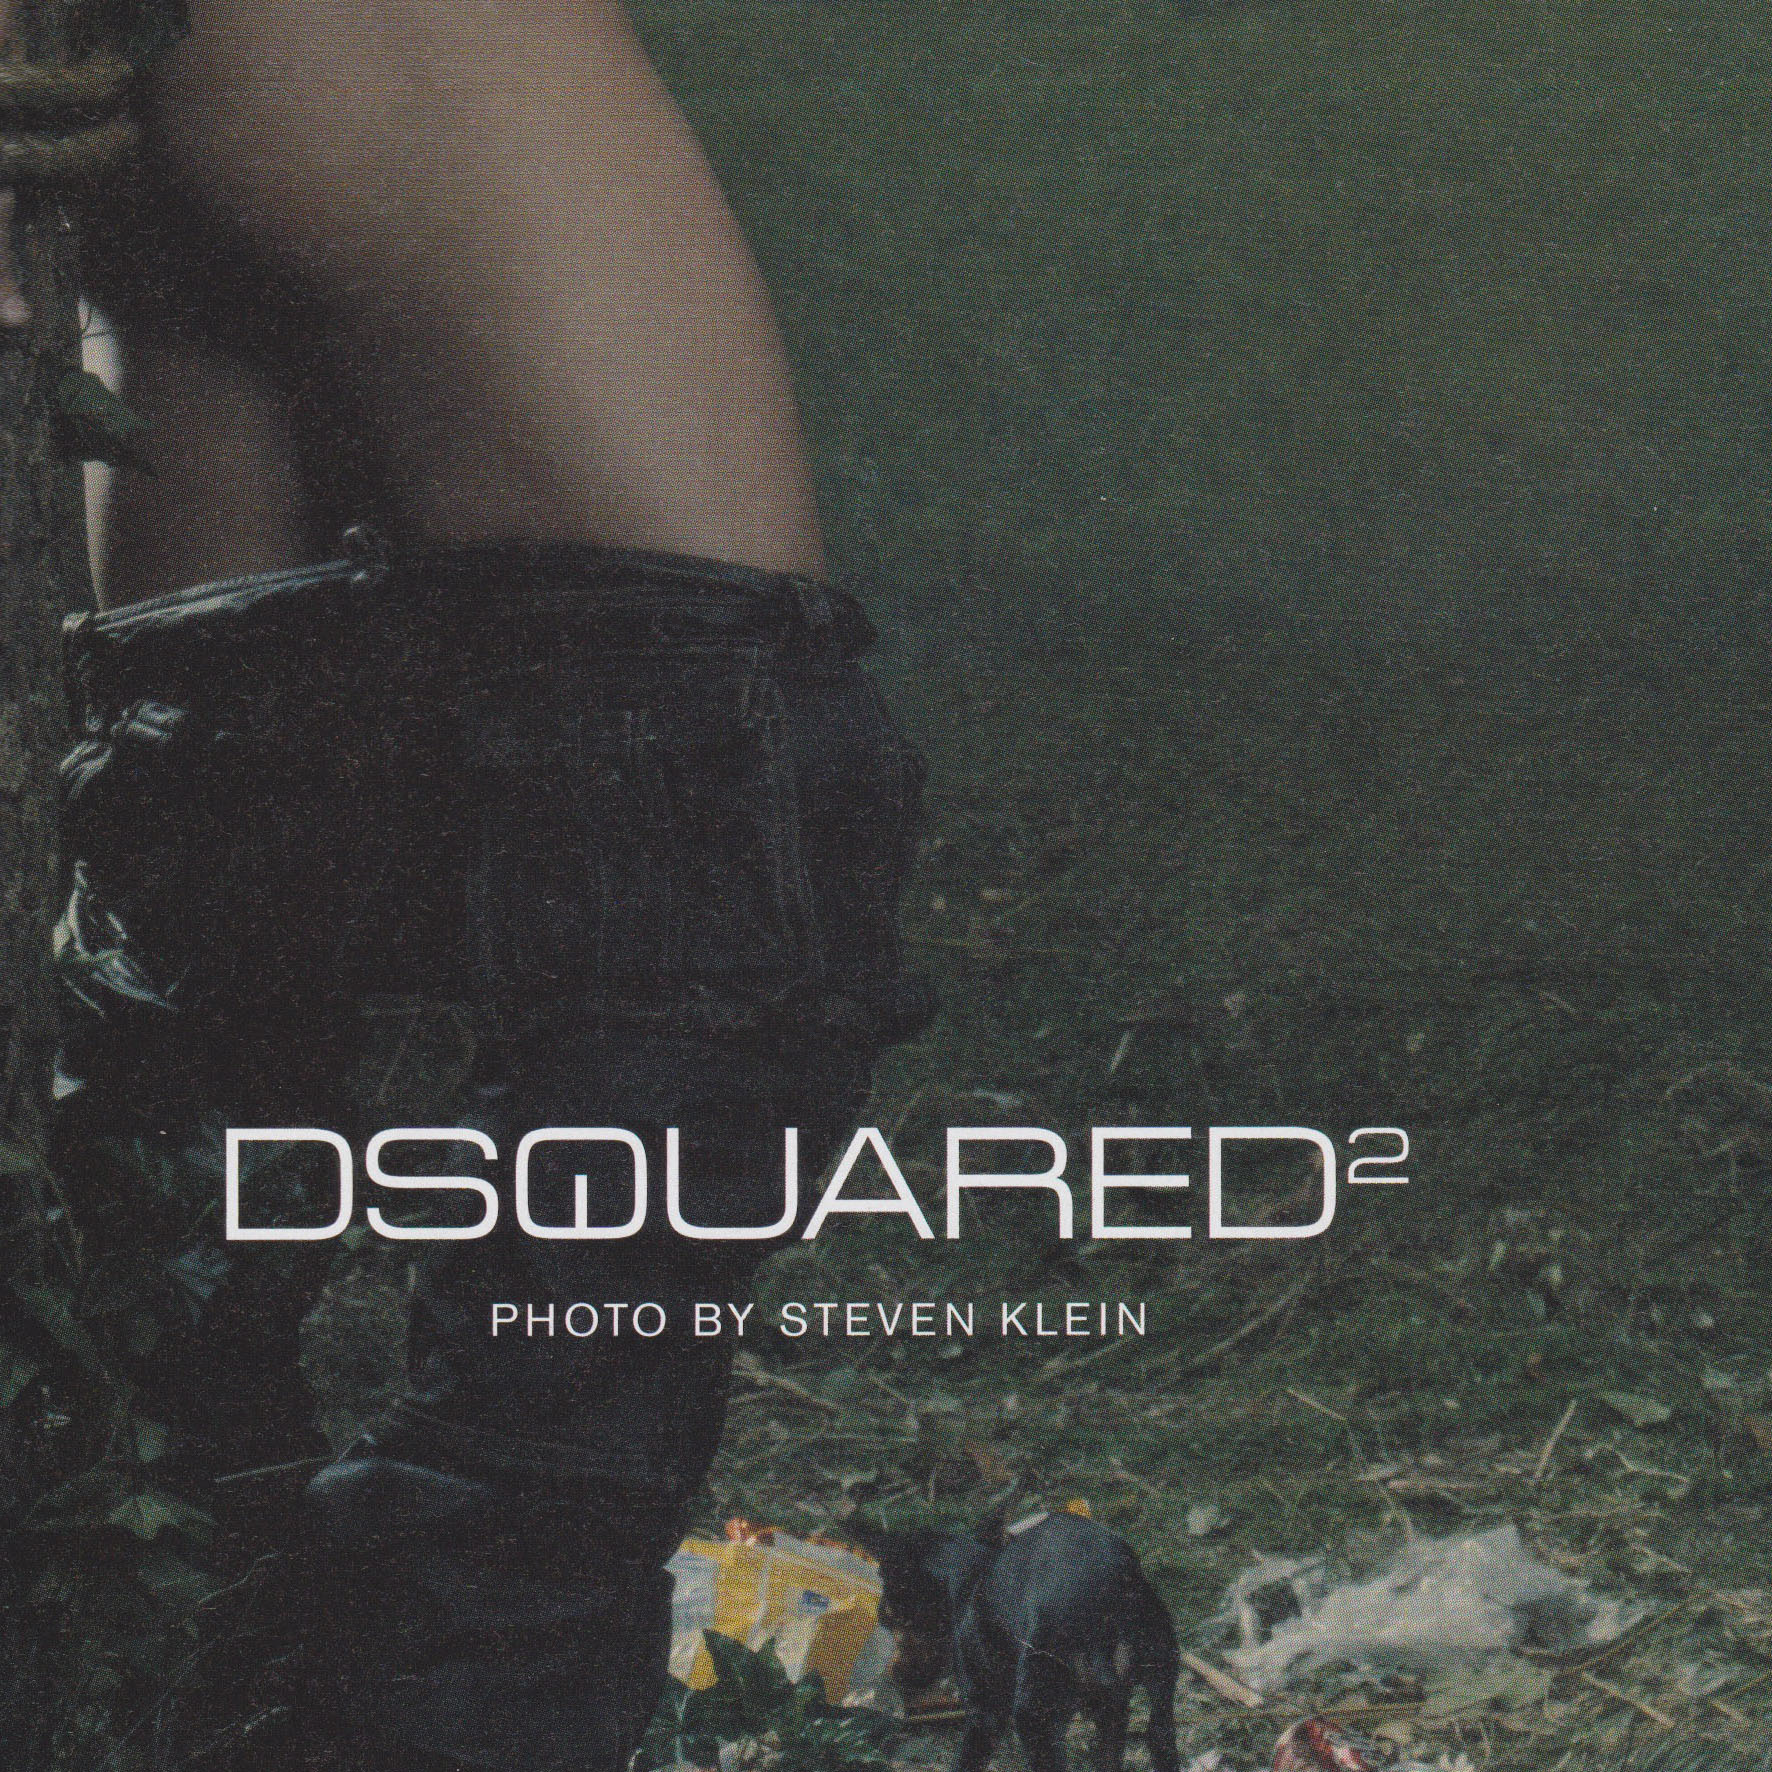 DsQuared shot by Steven Klein